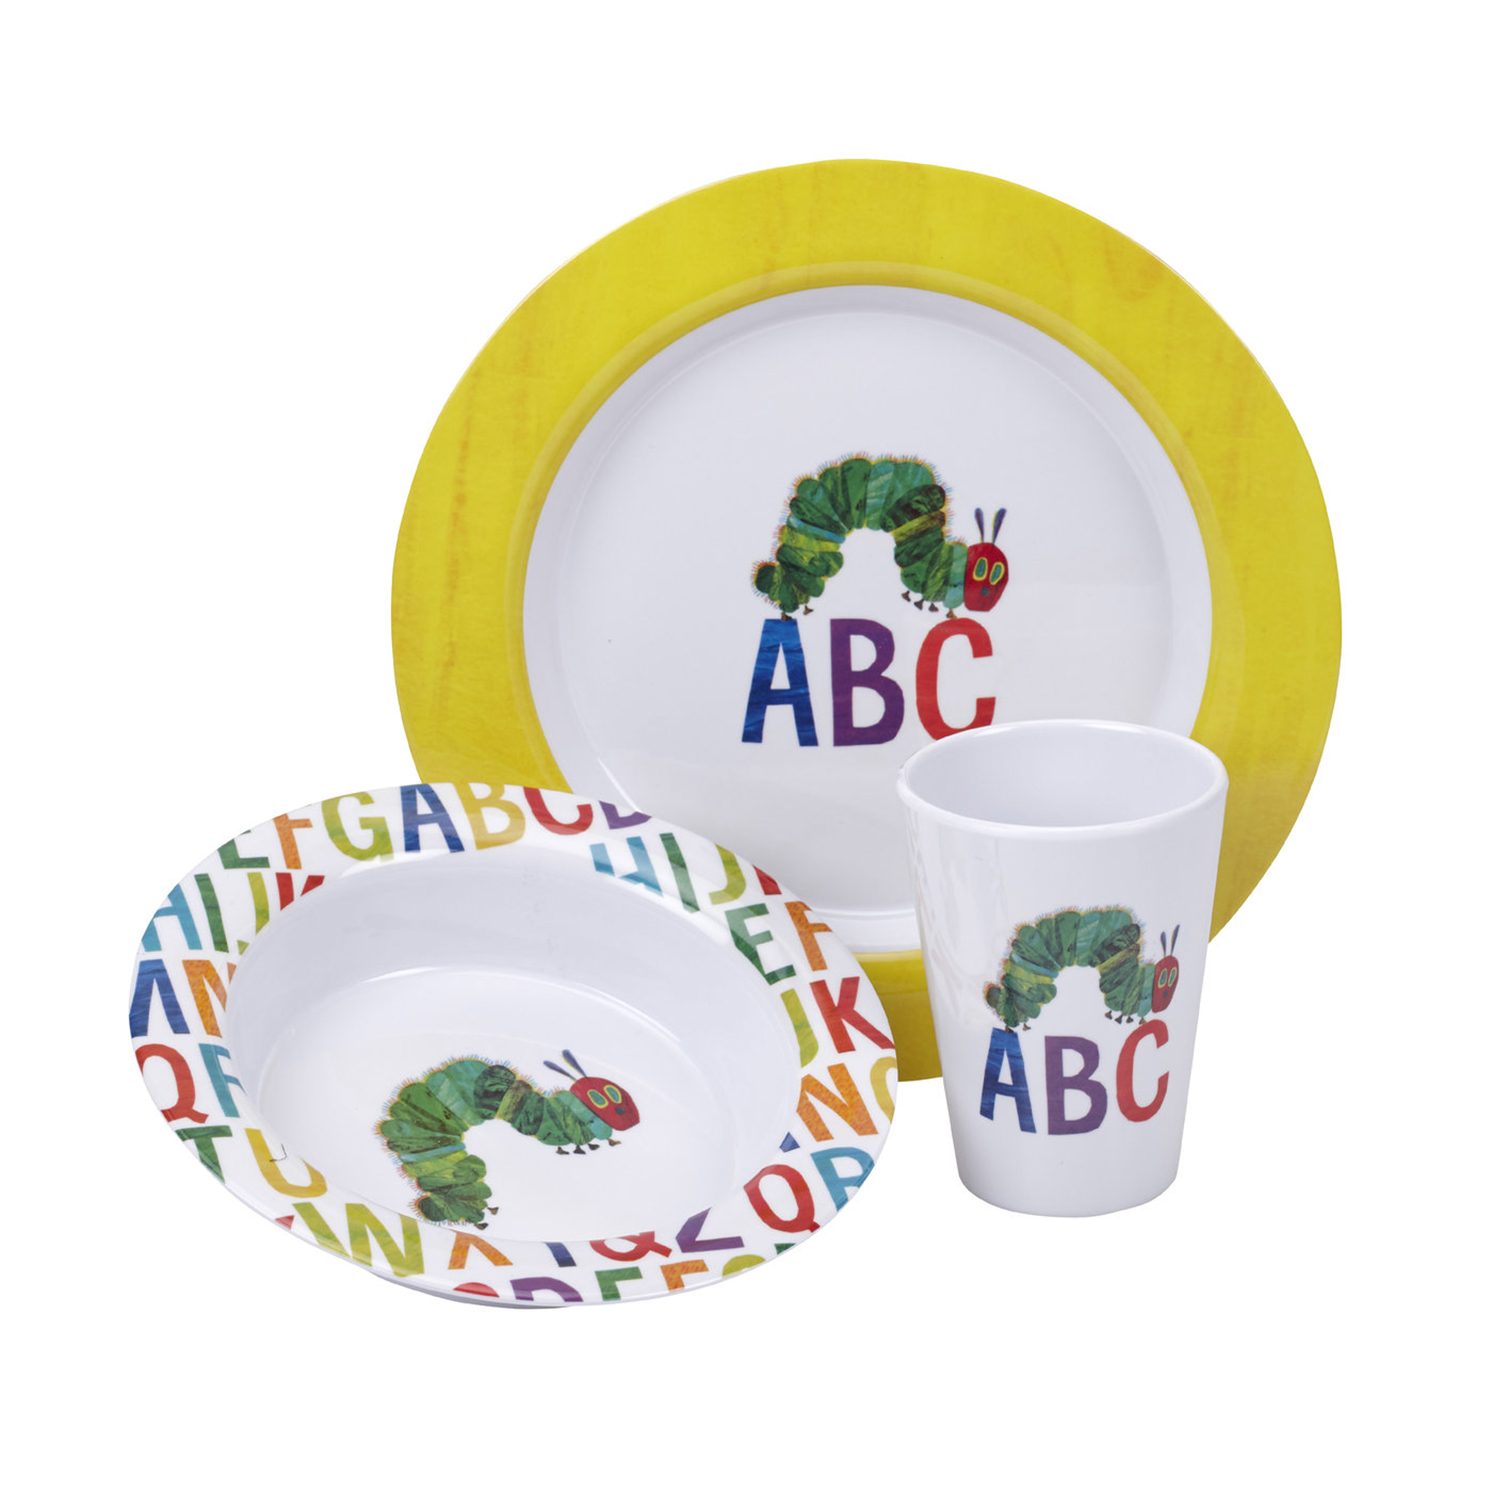 Portmeirion – The Very Hungry Caterpillar 3 Piece ABC Melamine Set in Gift Box